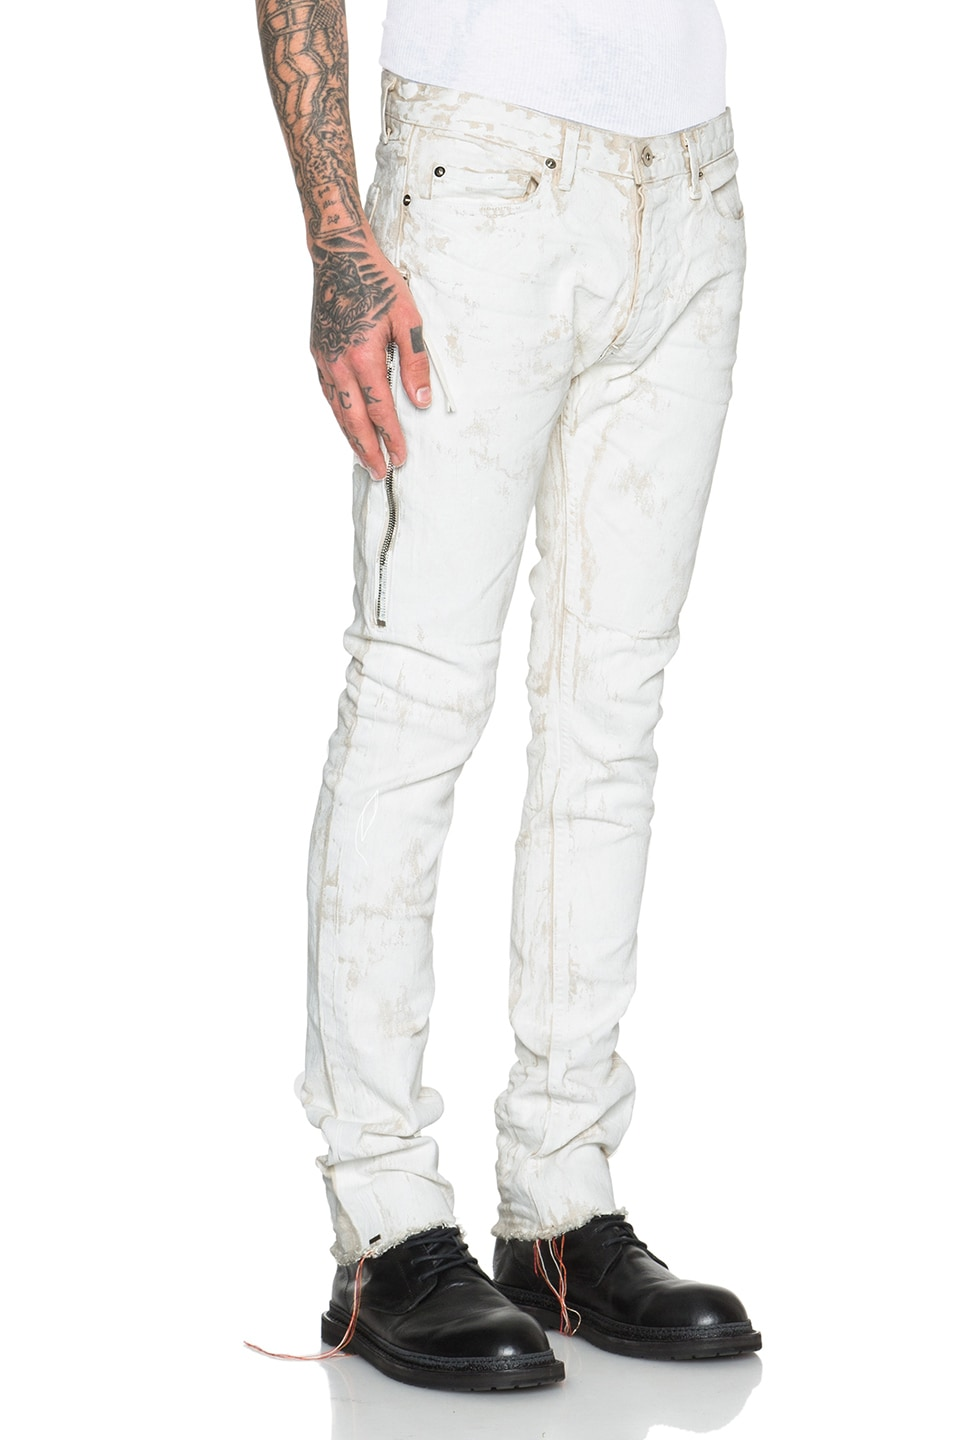 Image 3 of Mr. Completely White Jeans in White Clay in White